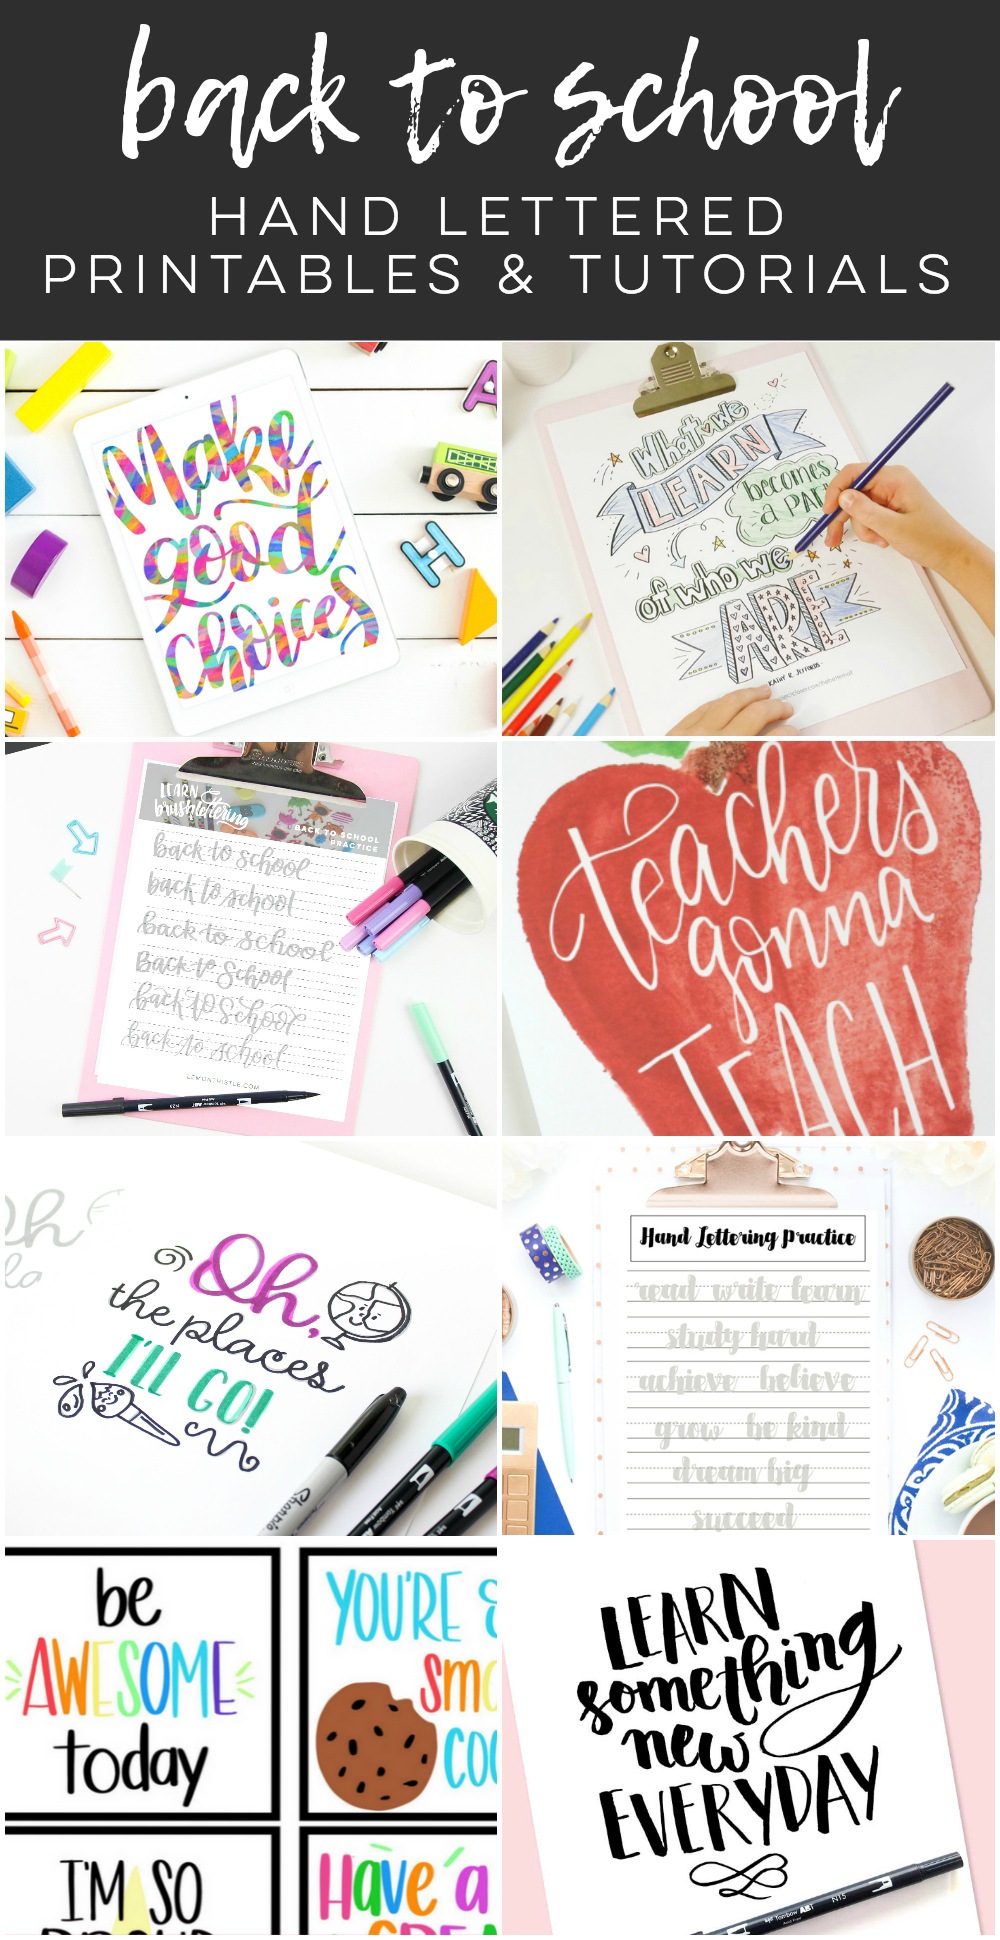 picture about Brush Lettering Practice Sheets Printable called Printable Brush Lettering Teach Sheet- Back again Towards Faculty